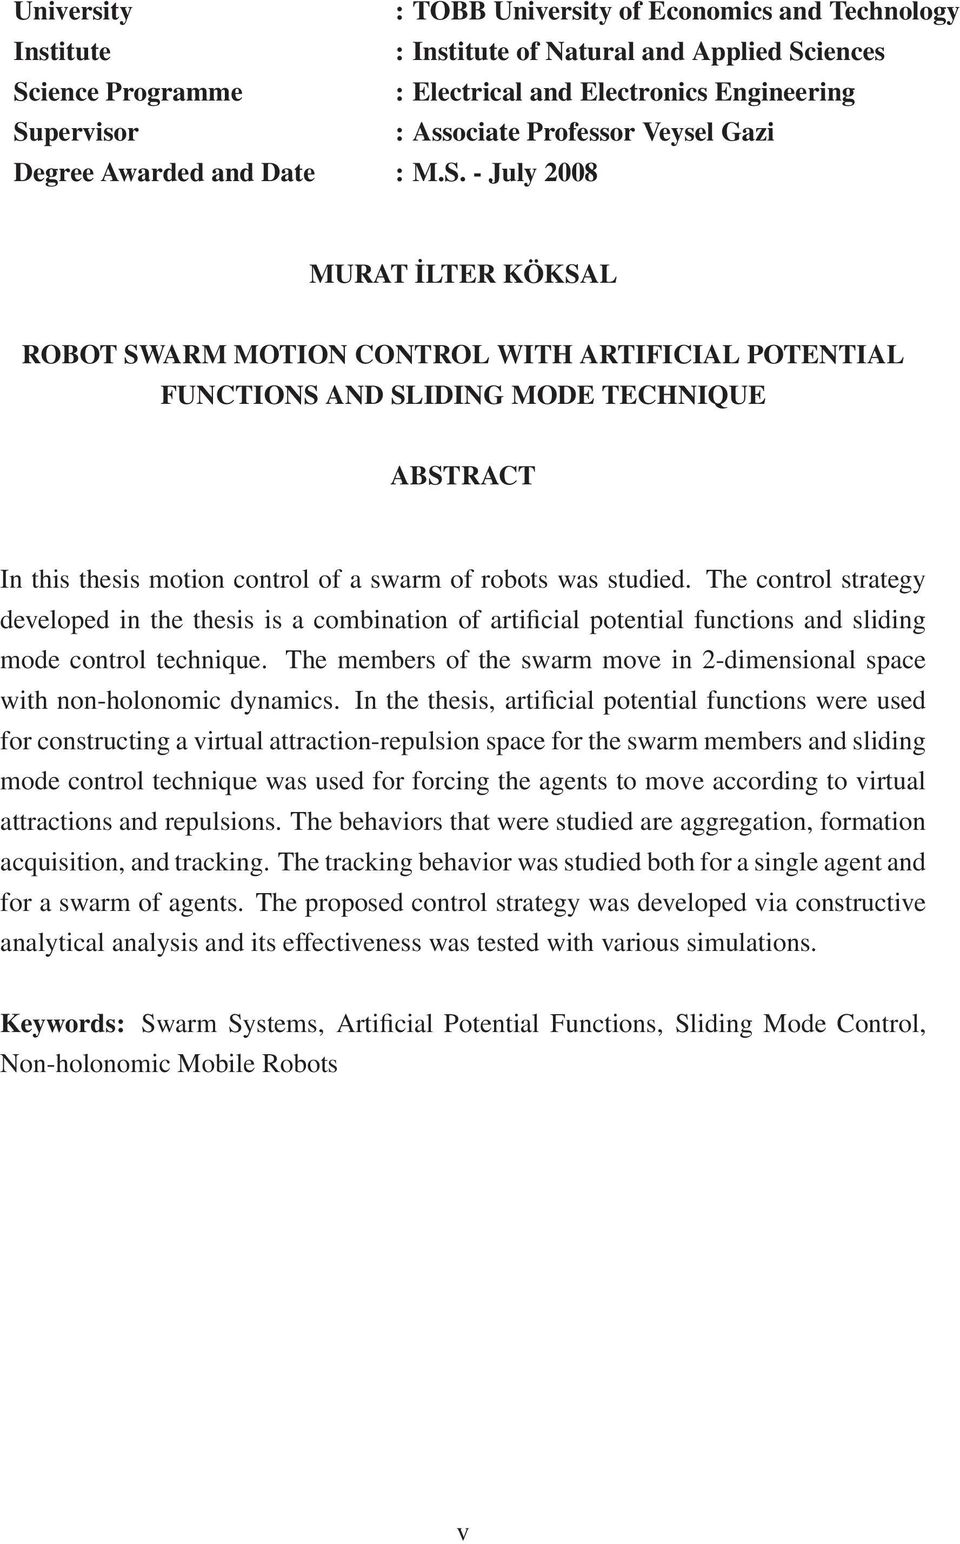 - July 2008 MURAT İLTER KÖKSAL ROBOT SWARM MOTION CONTROL WITH ARTIFICIAL POTENTIAL FUNCTIONS AND SLIDING MODE TECHNIQUE ABSTRACT In this thesis motion control of a swarm of robots was studied.